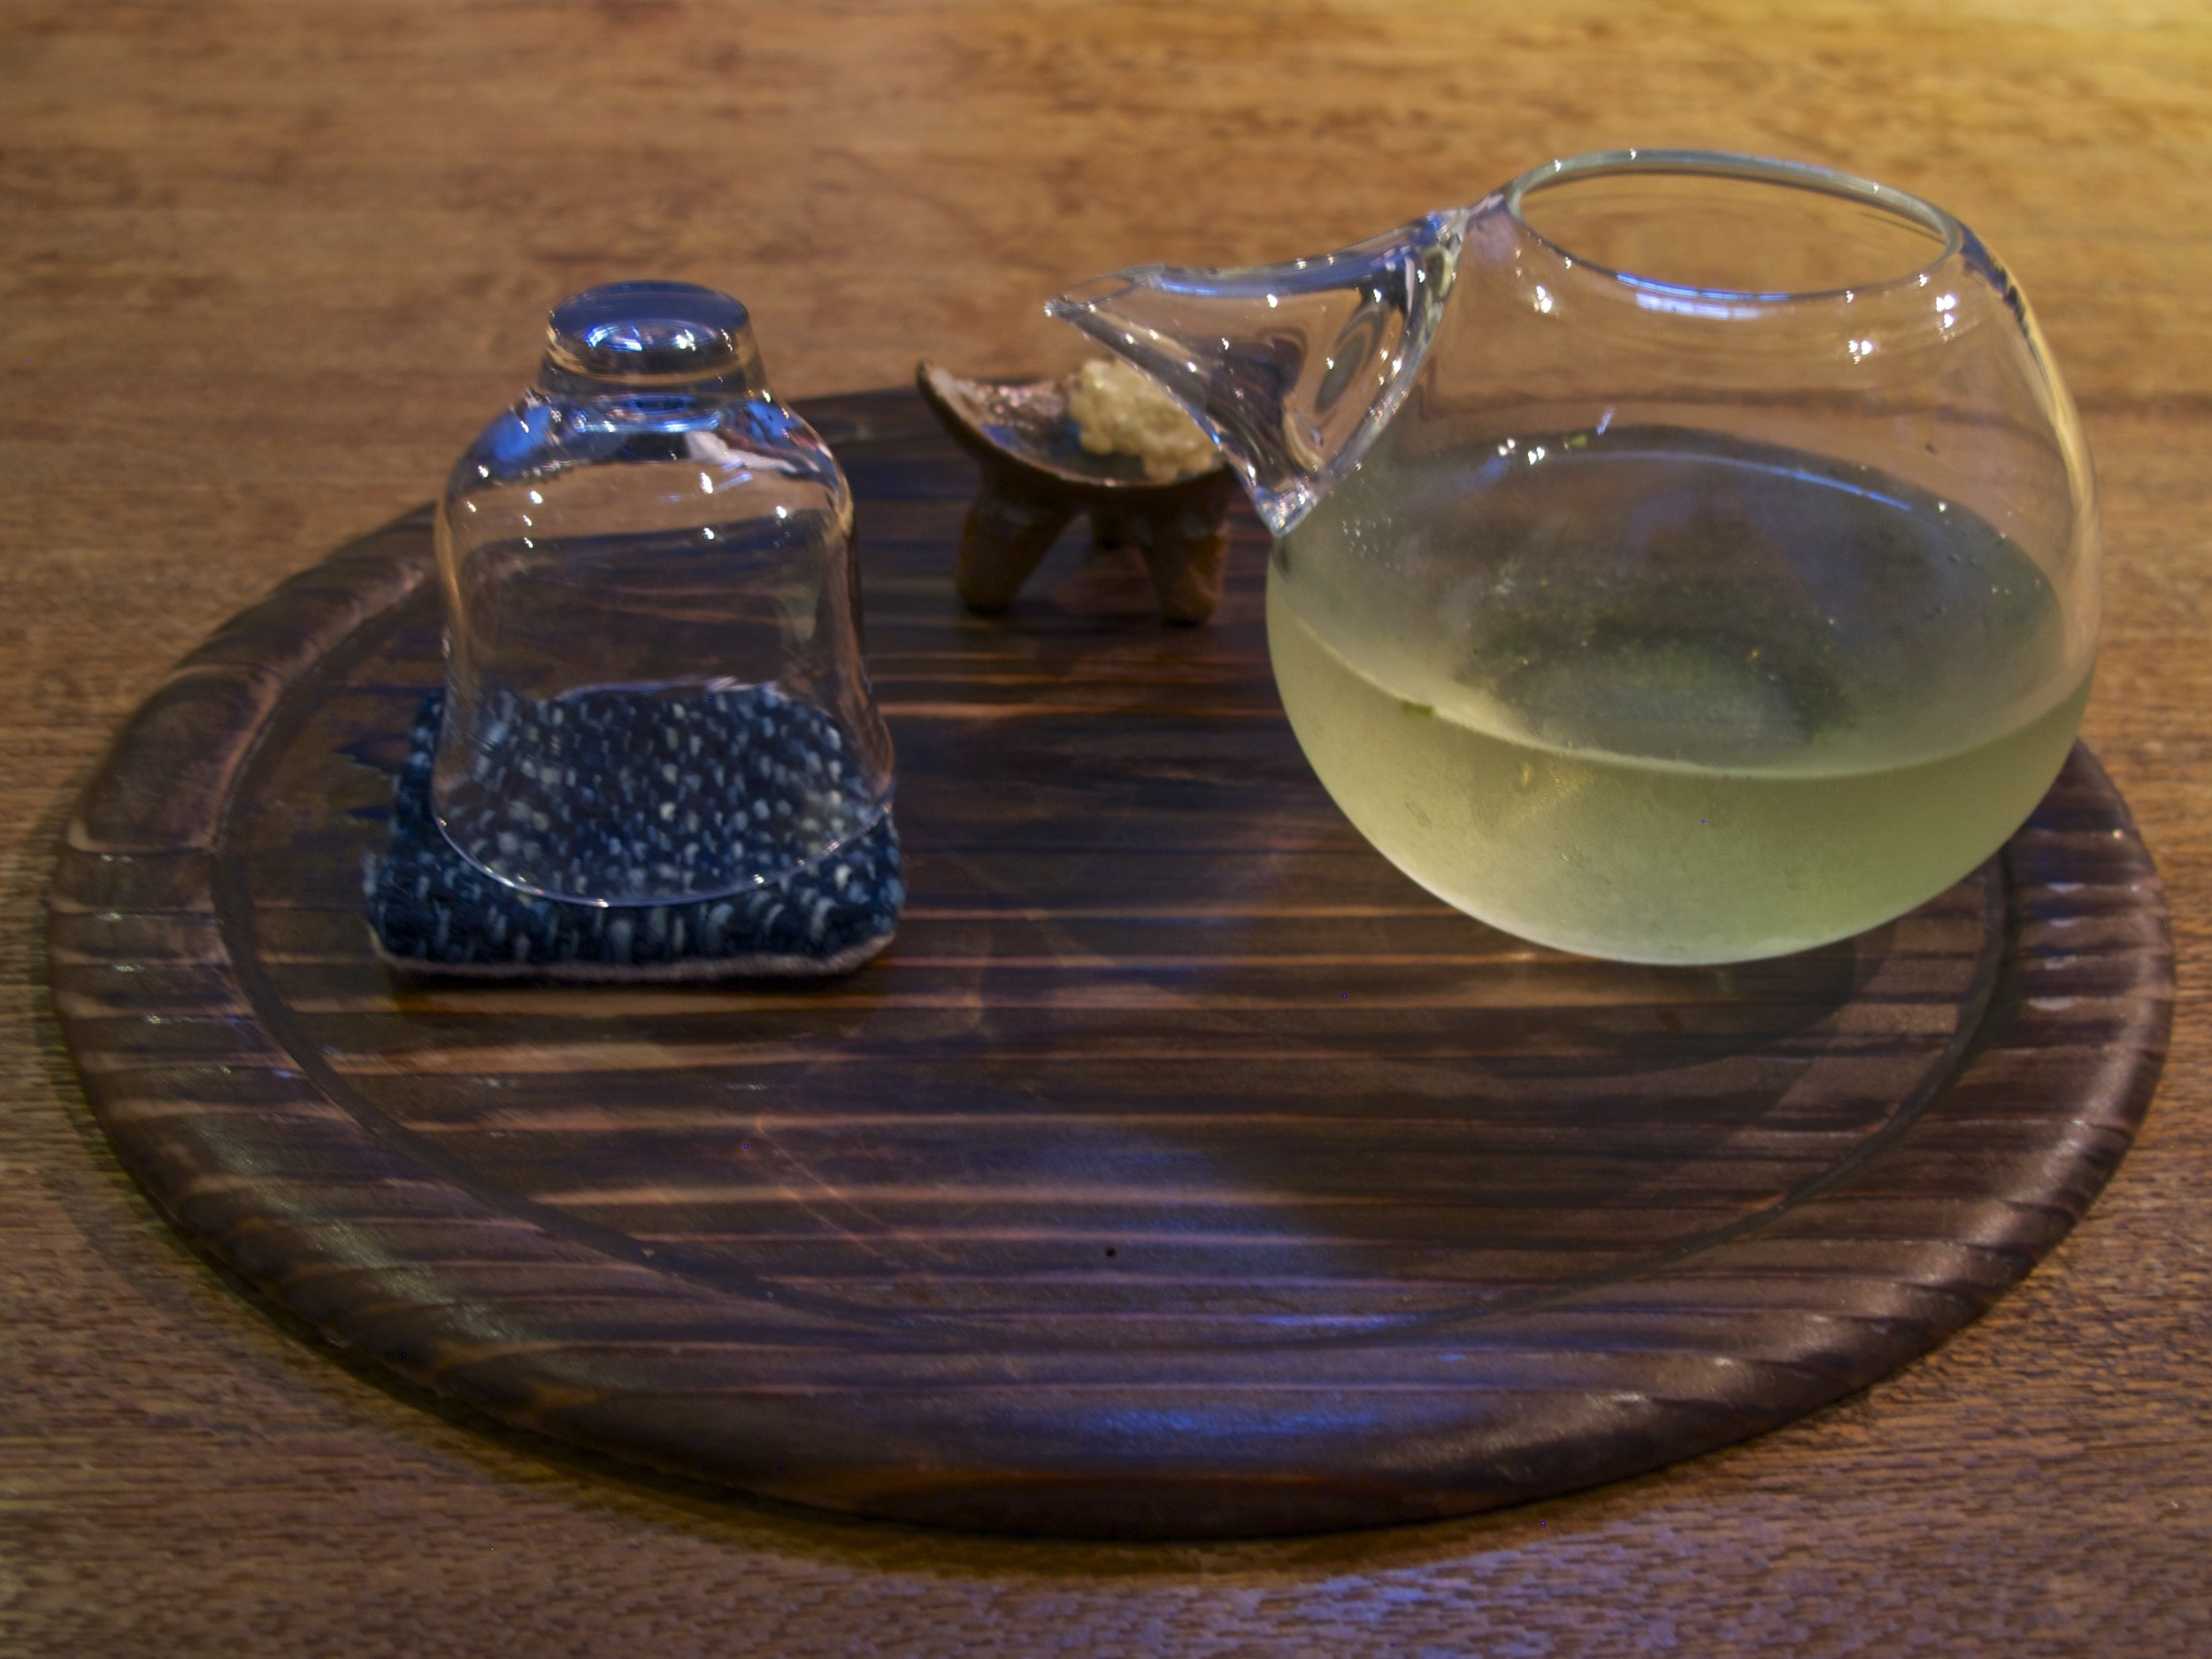 Made from tea bushes grown in the shade and laden with umami, g yokuro  is the richest tasting type of green tea. In summer it is served cold in a hand-blown pitcher and glass to guests upon their arrival.